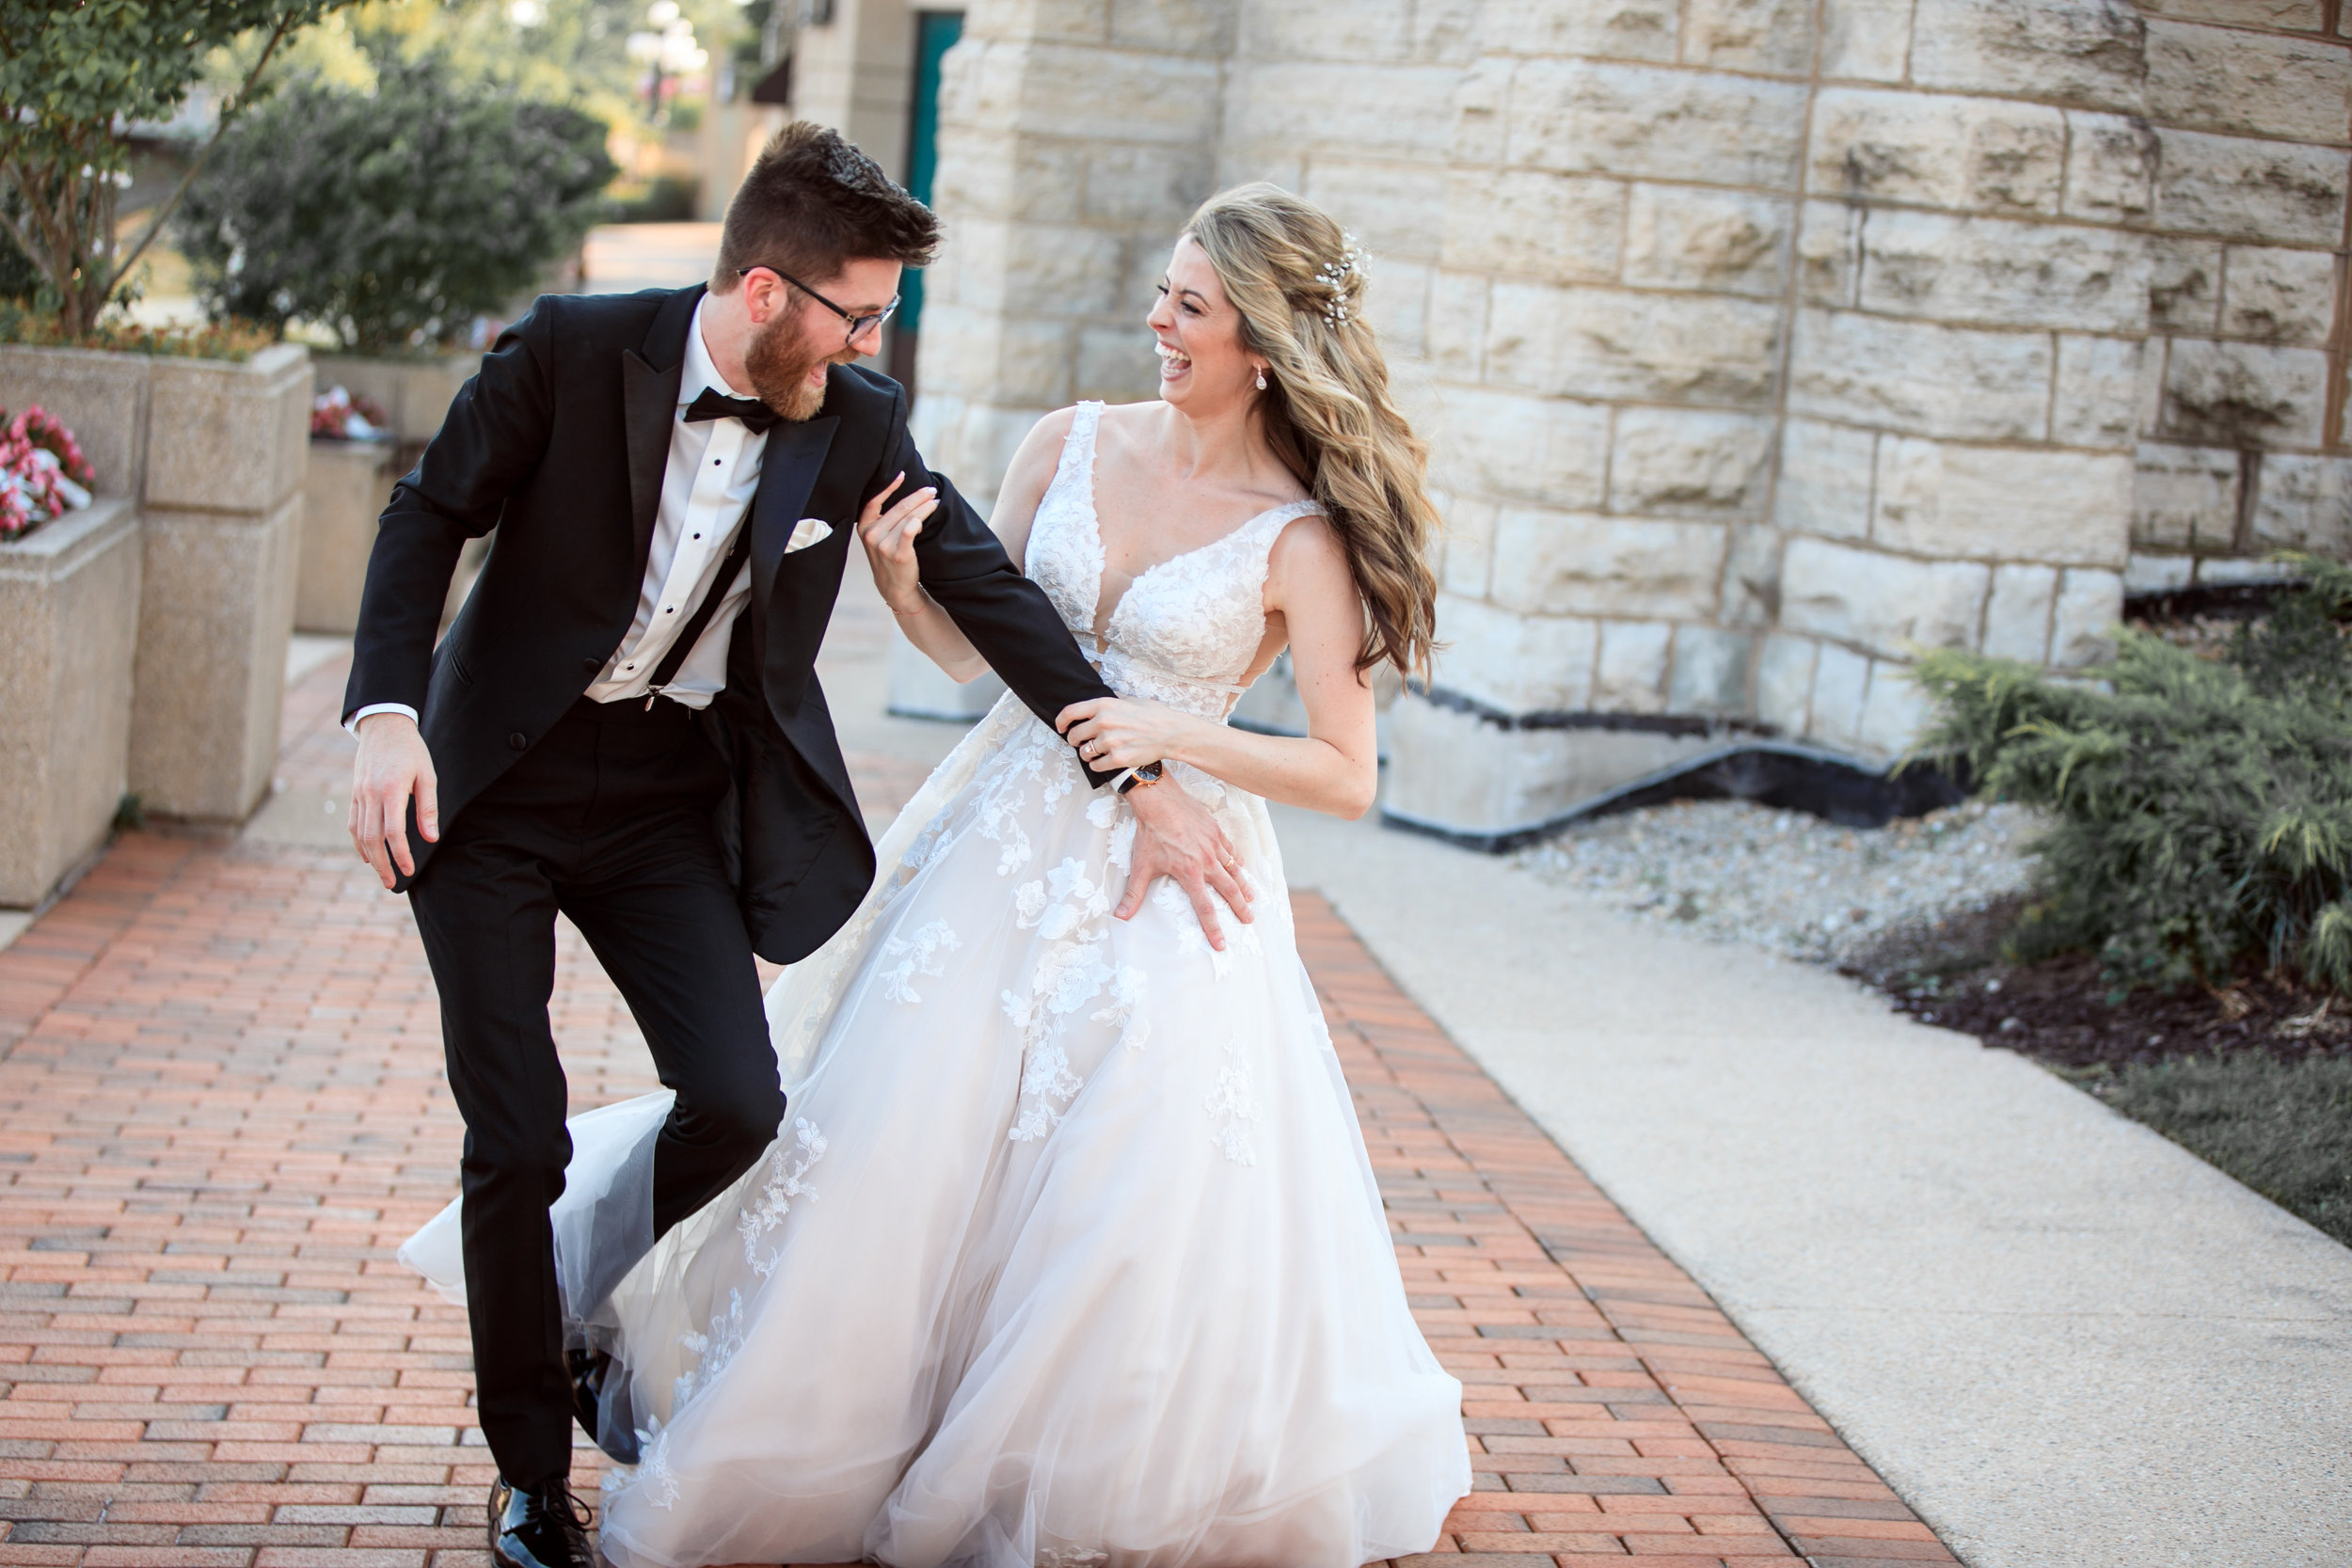 Hilarious-funny-bride-and-groom-take-wedding-photos-to-next-level37.jpg